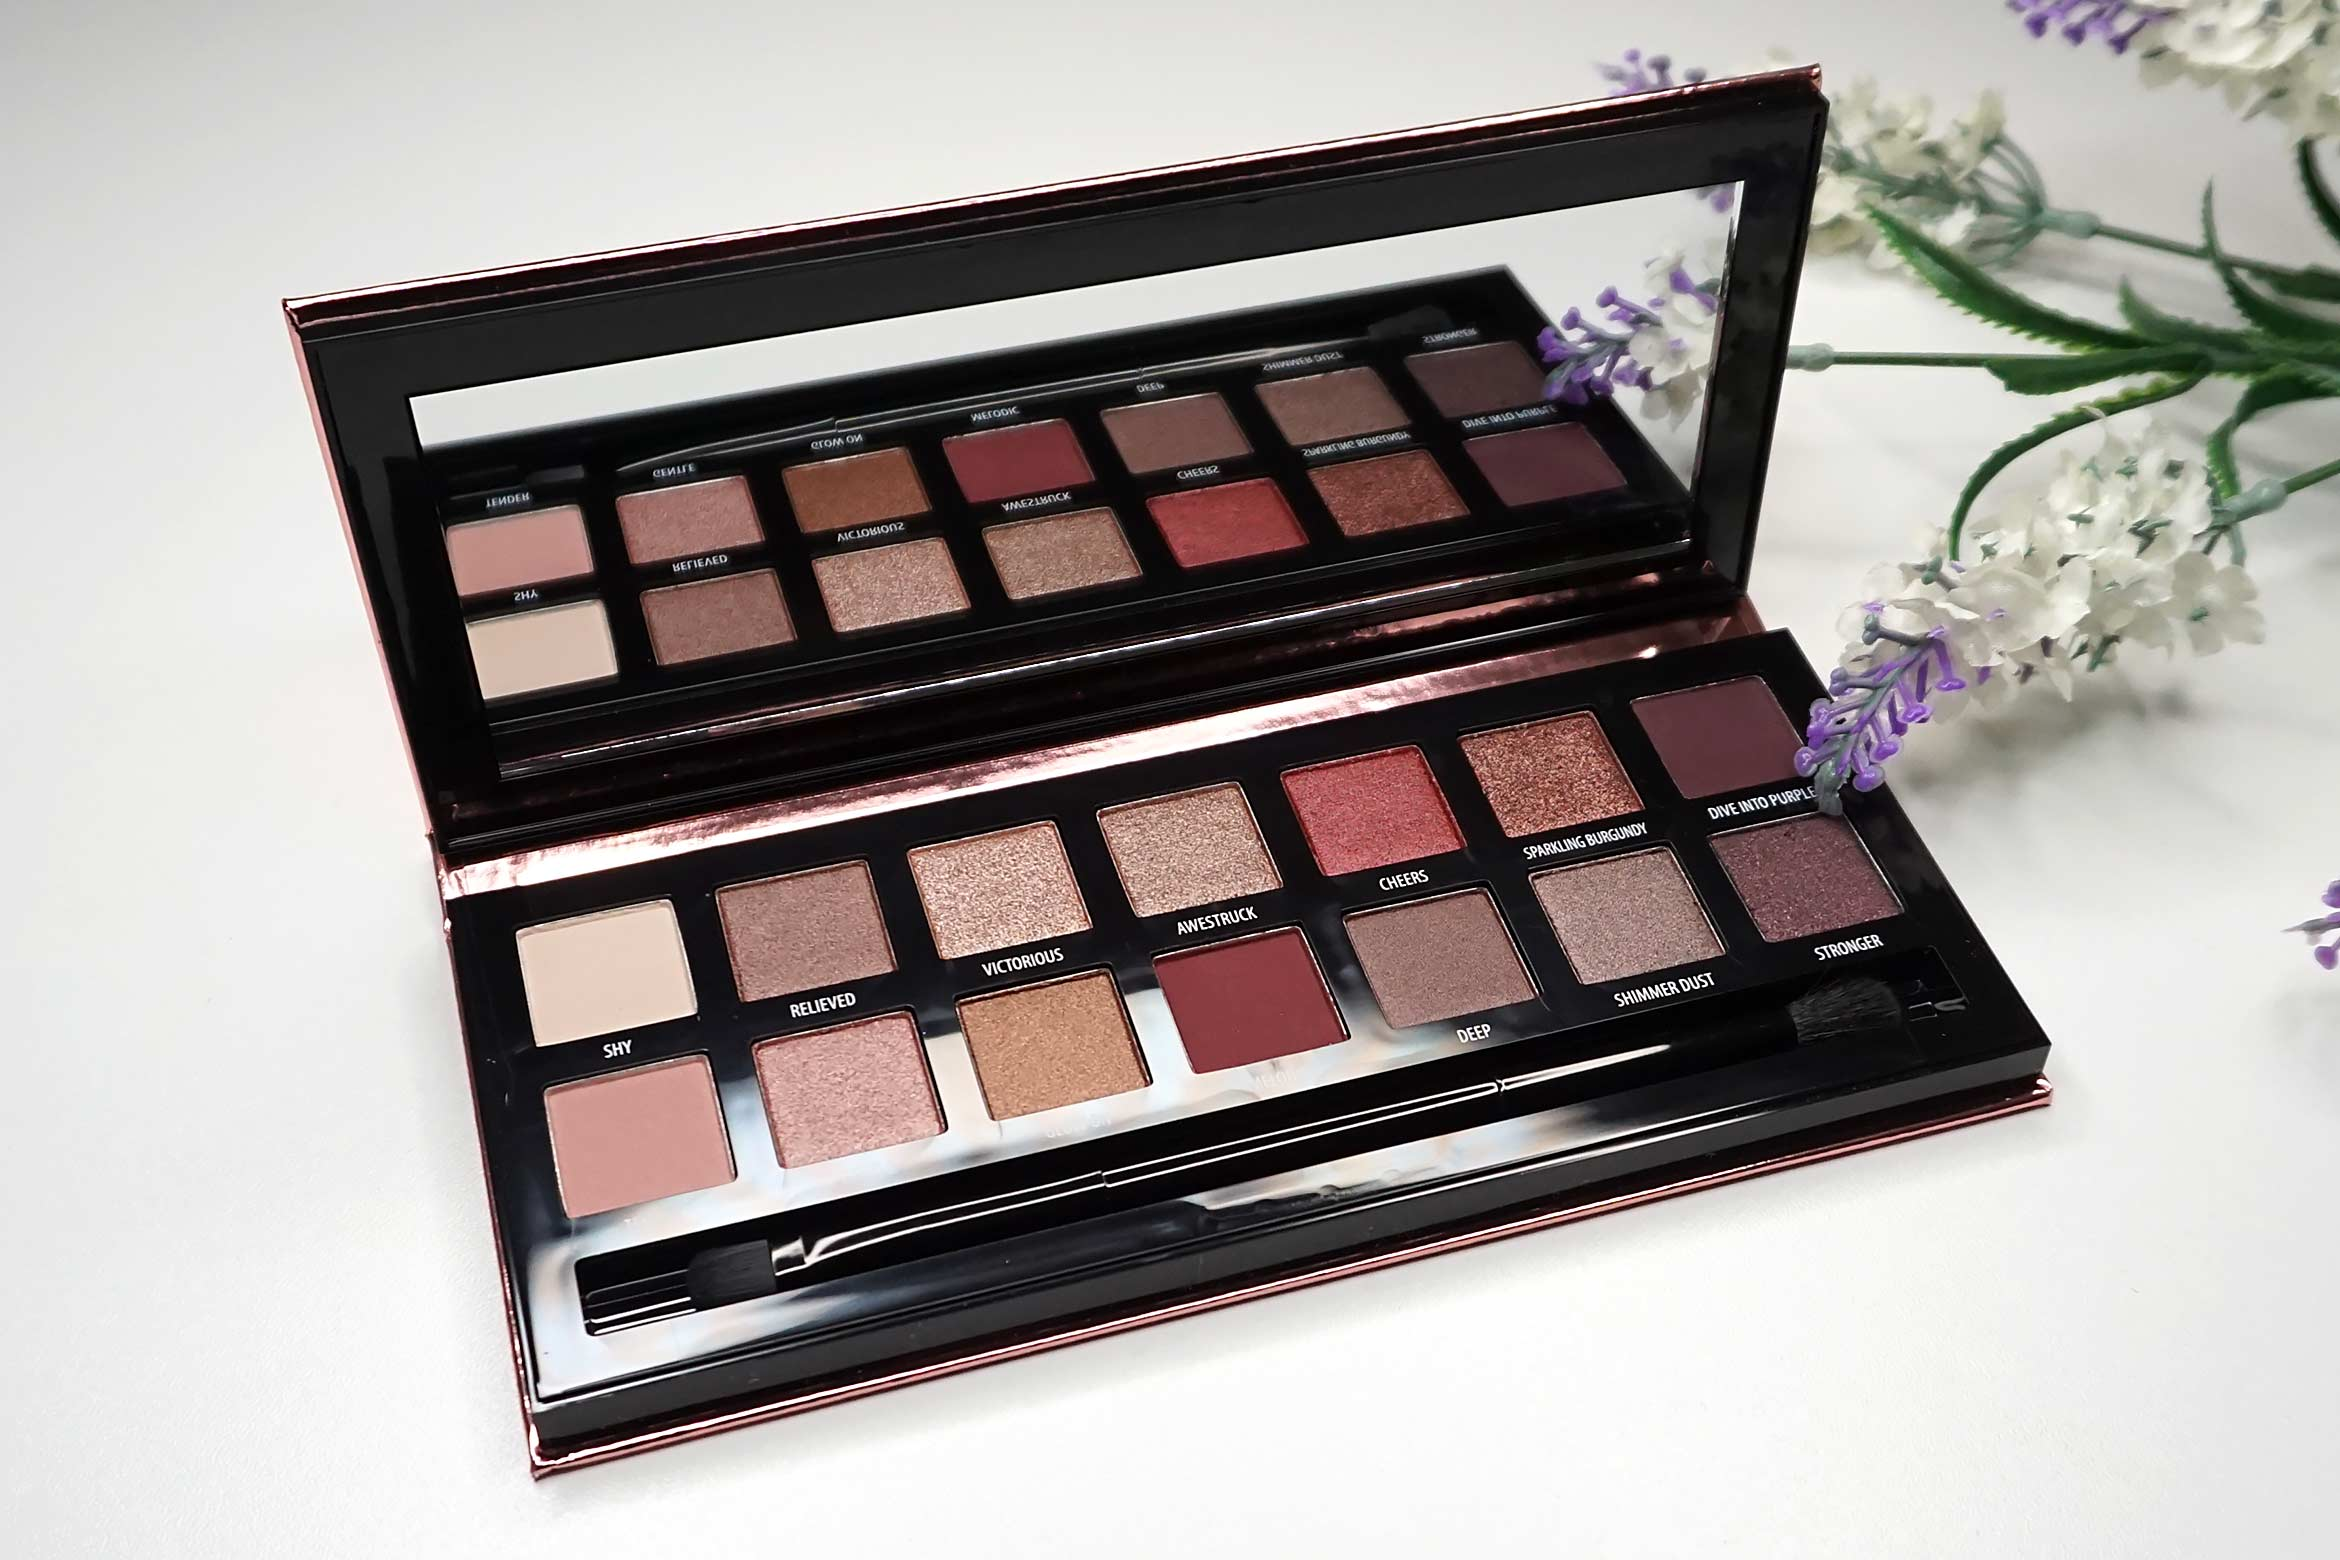 douglas-pink-nudes-eyeshadow-palette-review-1